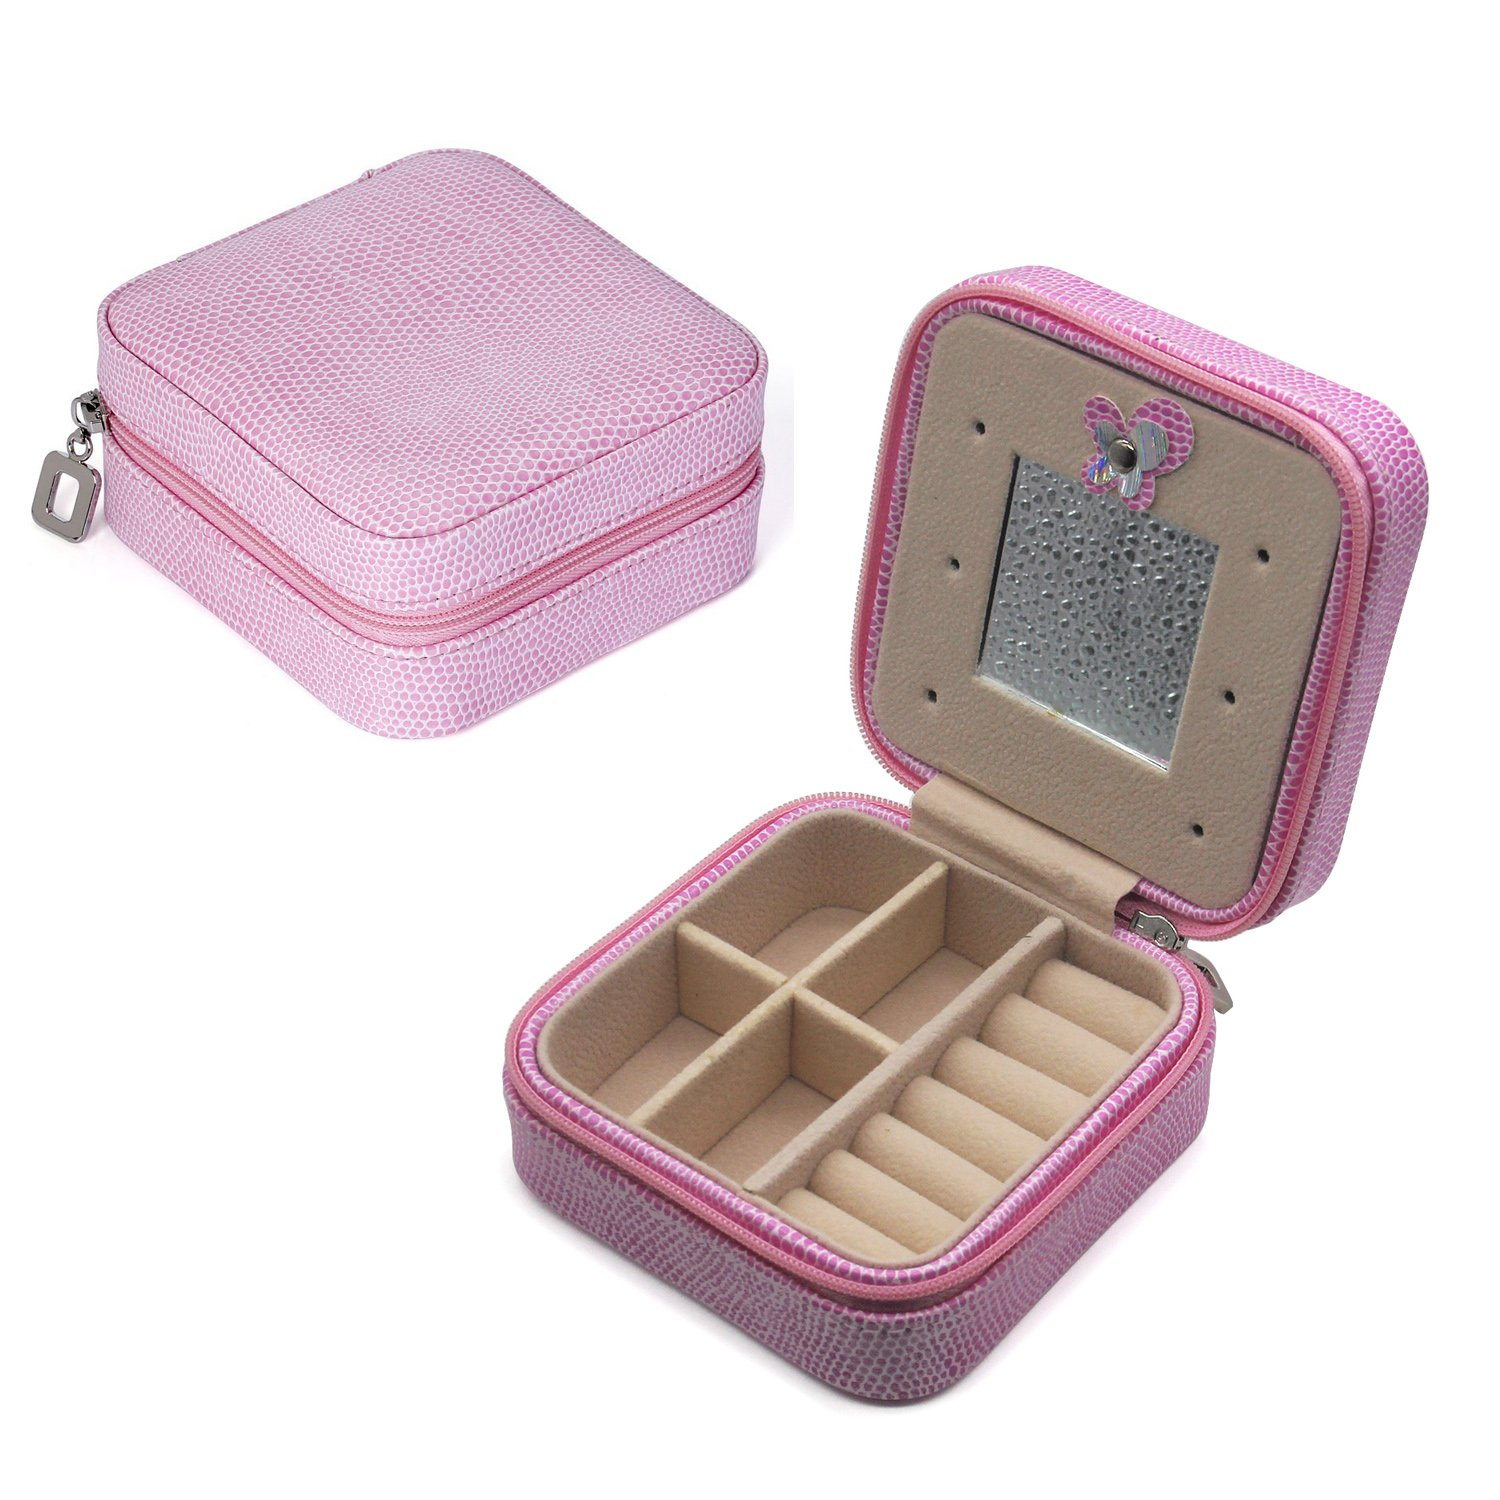 AVESON Portable Small PU Leather Travel Jewelry Box Organizer Cosmetic Storage Case with Mirror for Rings Earrings Necklace Ring (Pink)